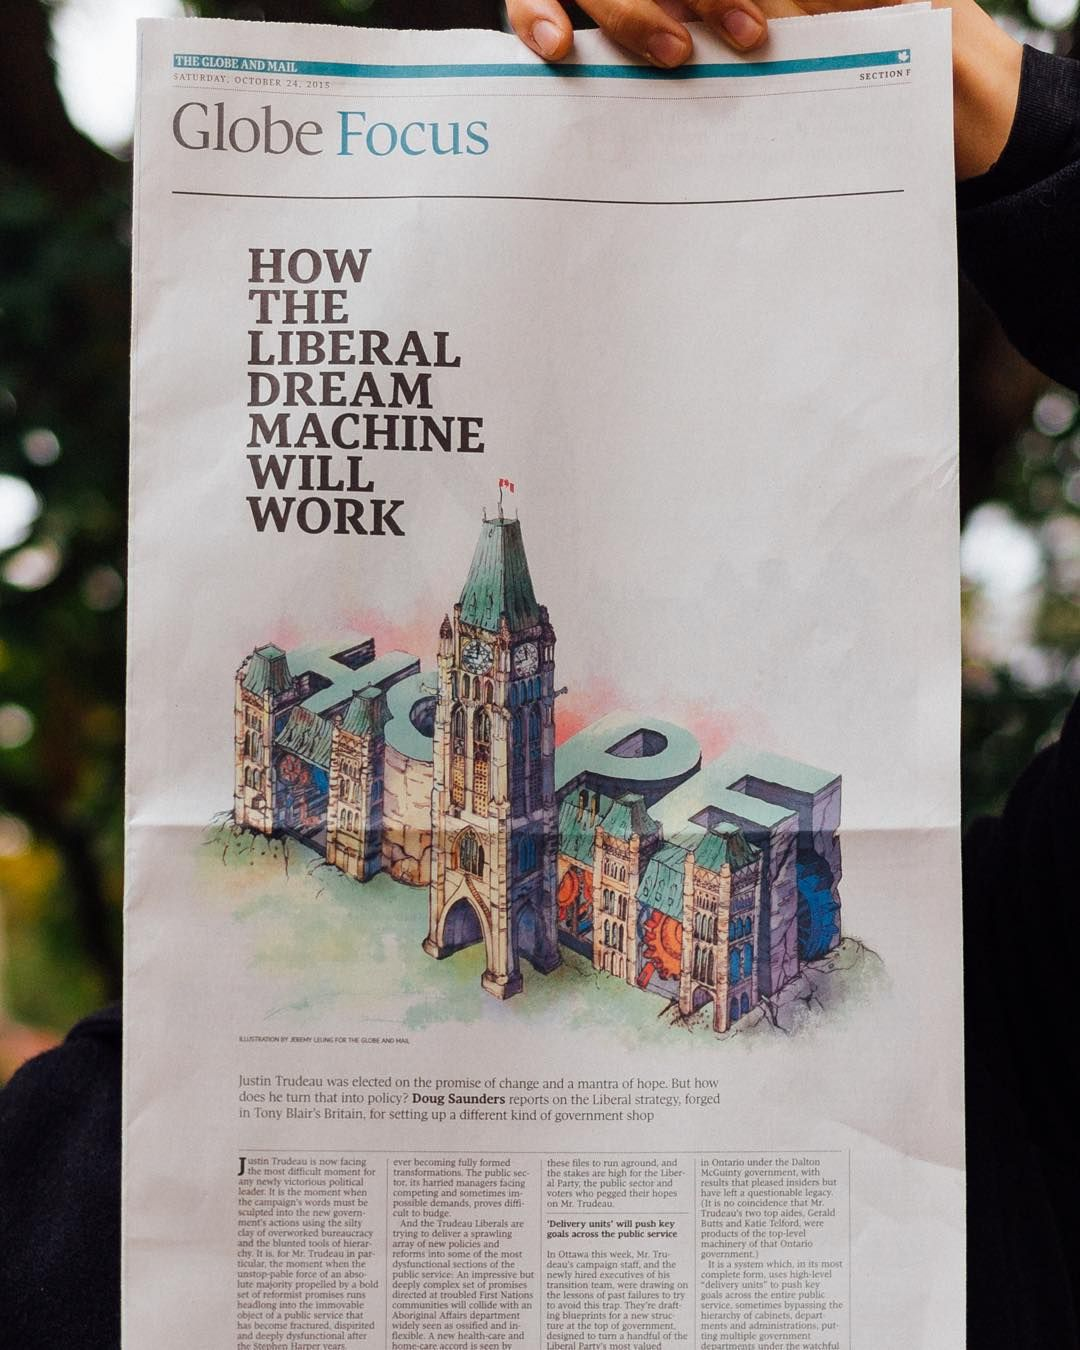 I'm on the front page of The Globe's Focus section today! An illustration on hope for this new age of a Liberal majority. Thanks to @globeartdept AD's Jason Chiu and Matt French for this very meaningful opportunity.